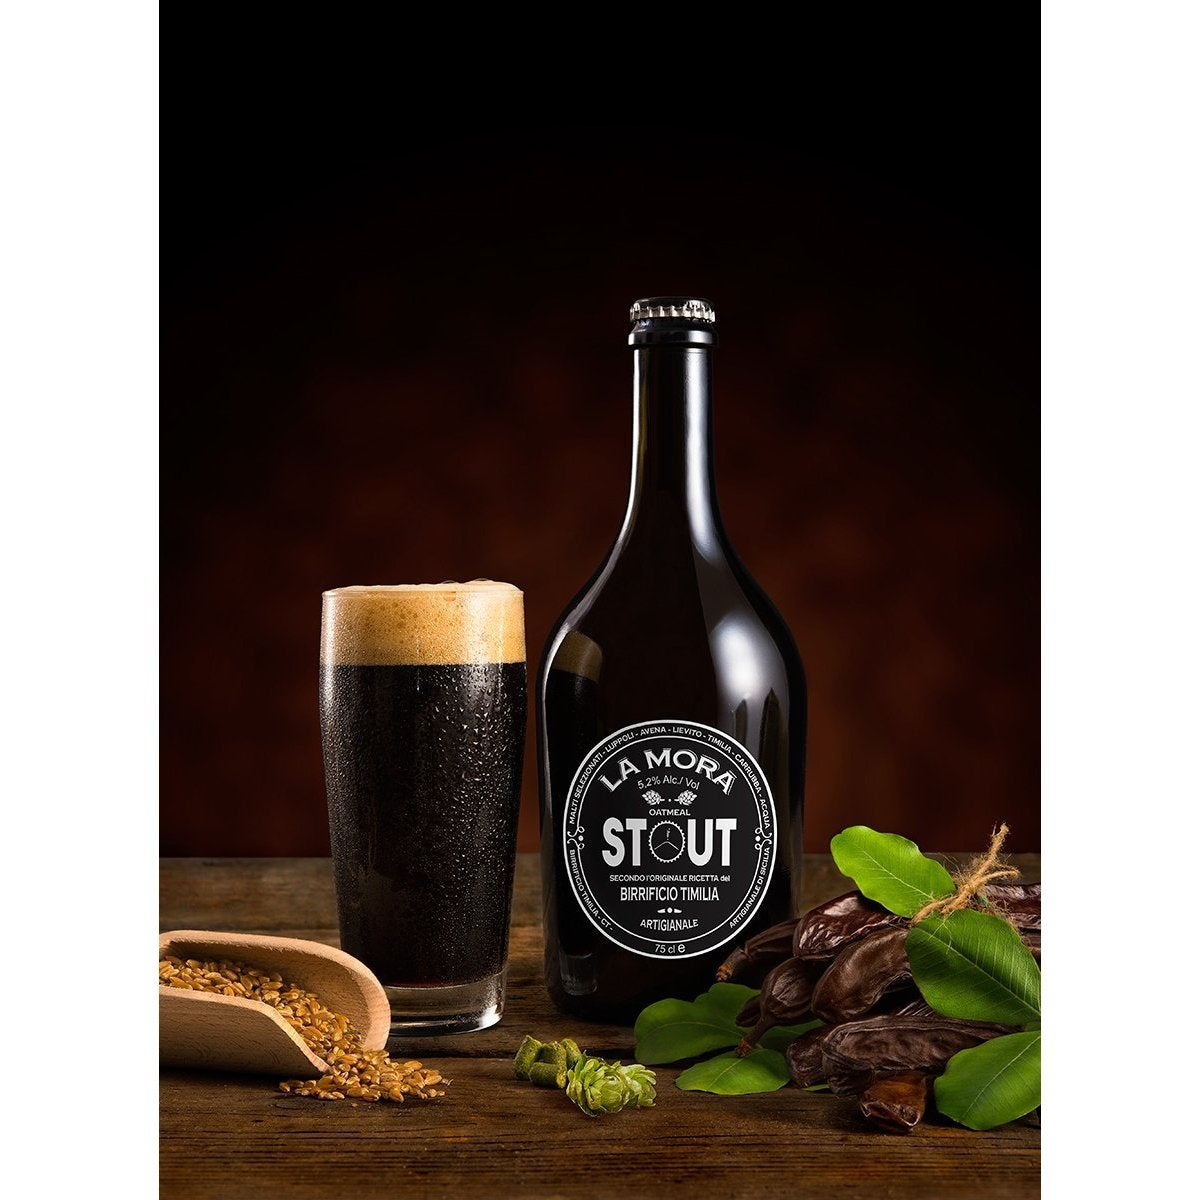 Birra Siciliana La Mora Stout - Food in Sicily